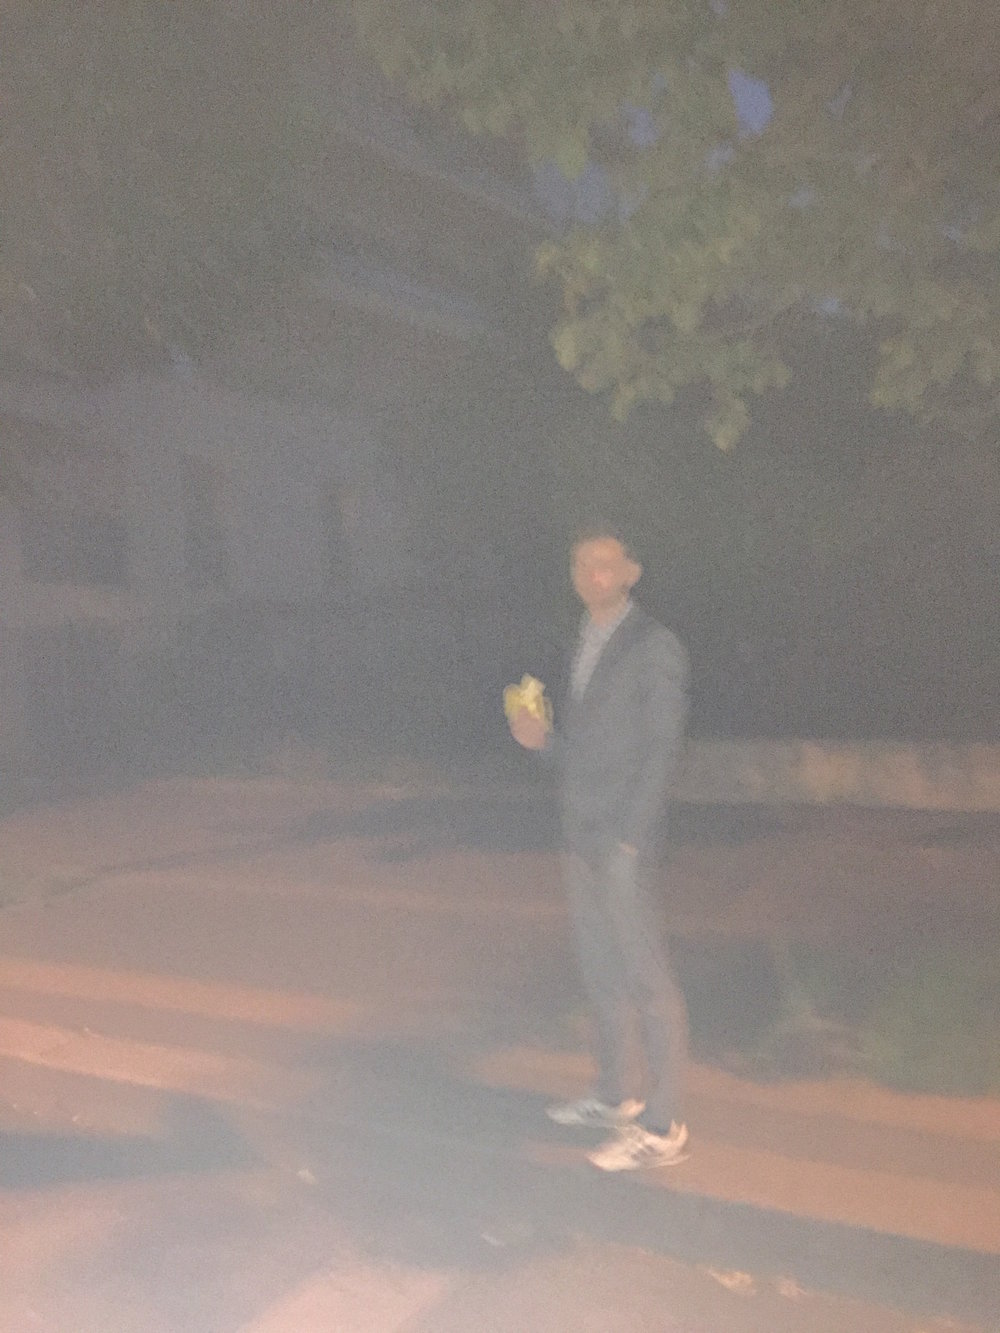 Graham collaborated in an Impressionist inspired photograph titled  The Banana Eater  taken by his roommate Lukas Paul.